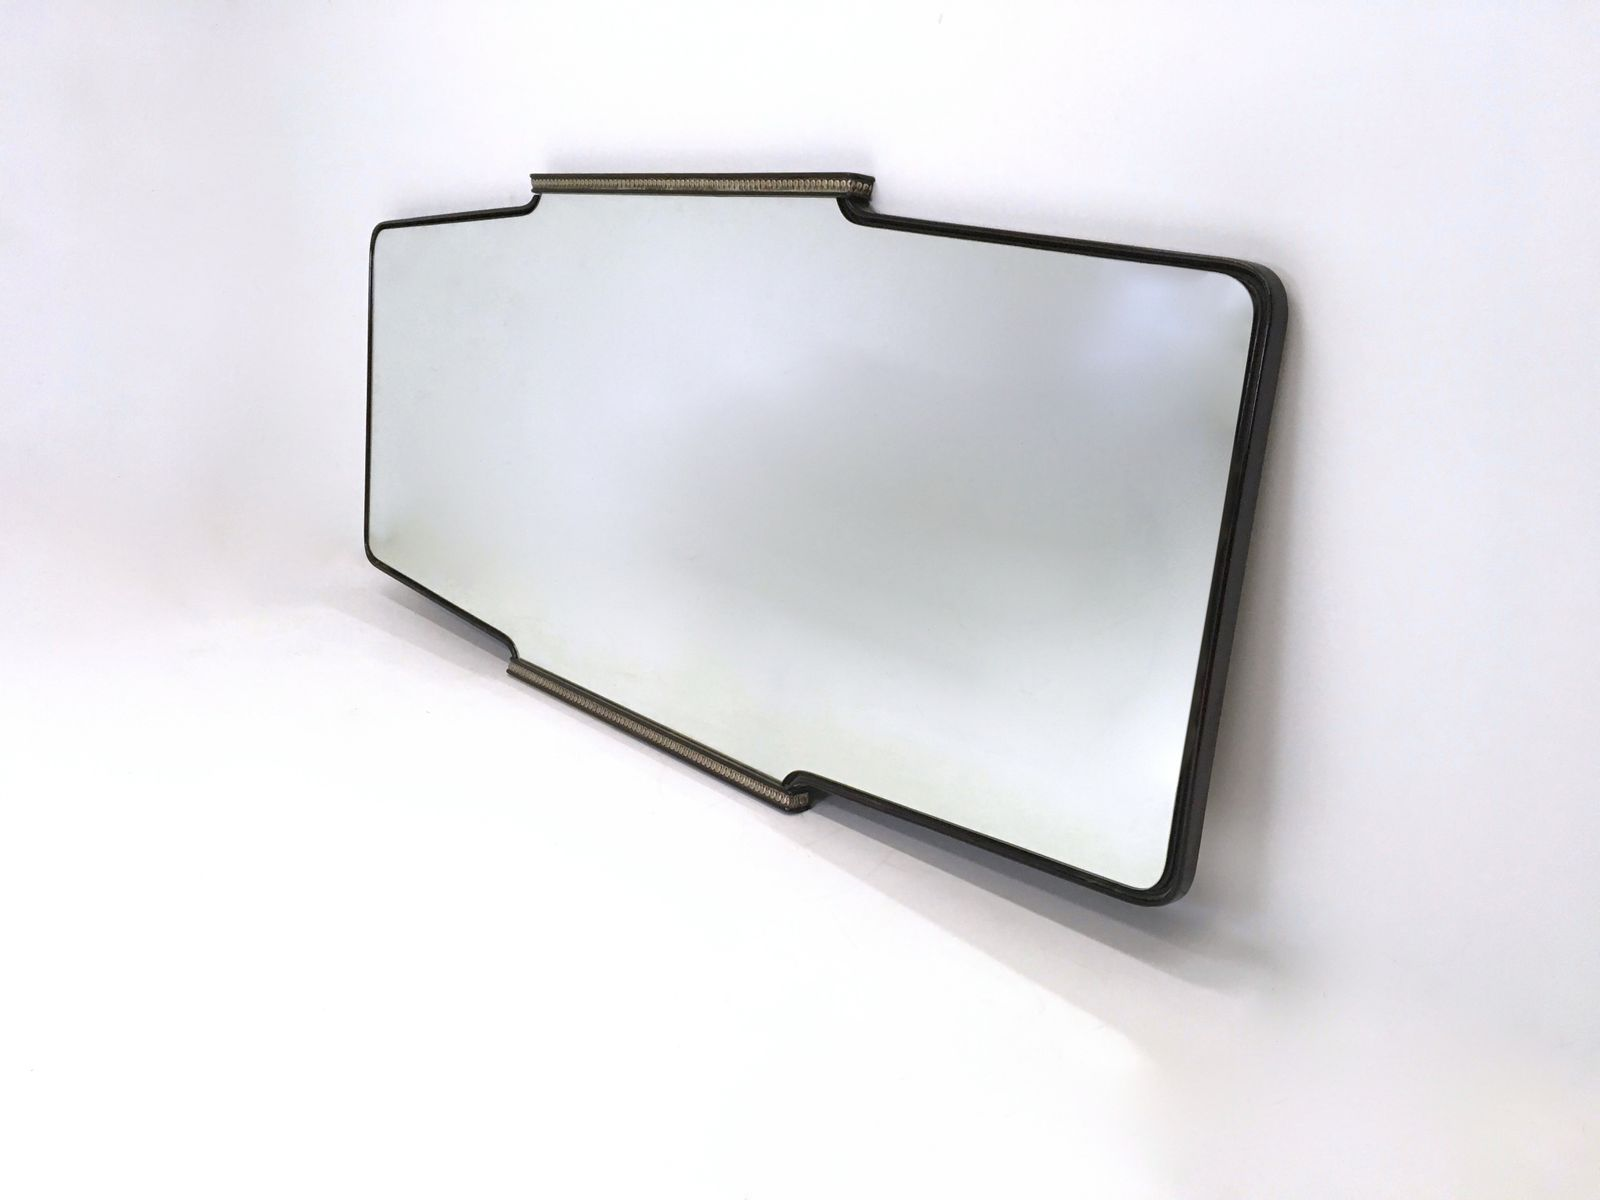 Large wall mirror by osvaldo borsani 1950s for sale at pamono for Large wall mirrors for sale